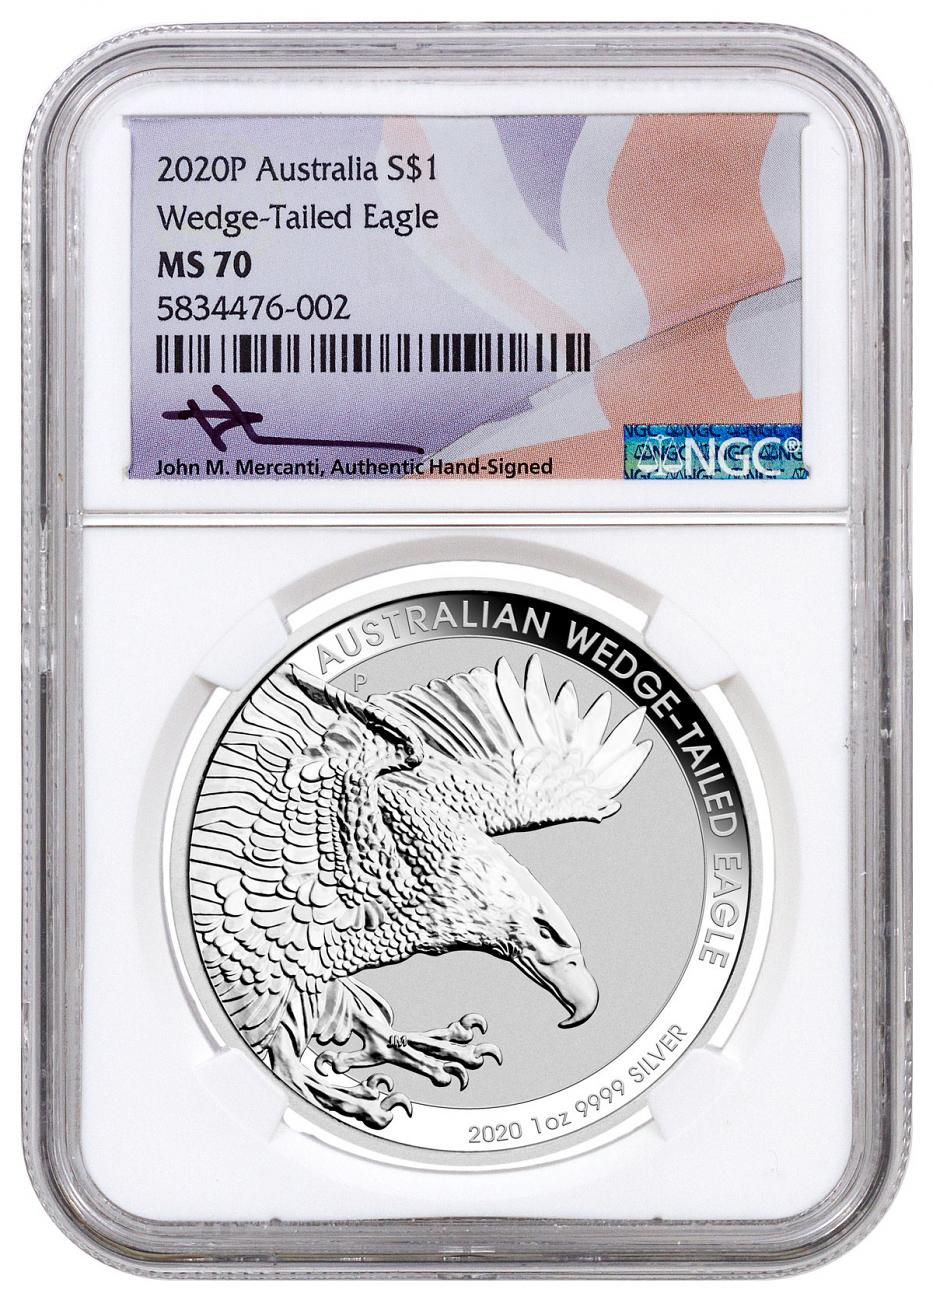 2020-P Australia 1 oz Silver Wedge-Tailed Eagle $1 Coin NGC MS70 Mercanti Signed Flag Label